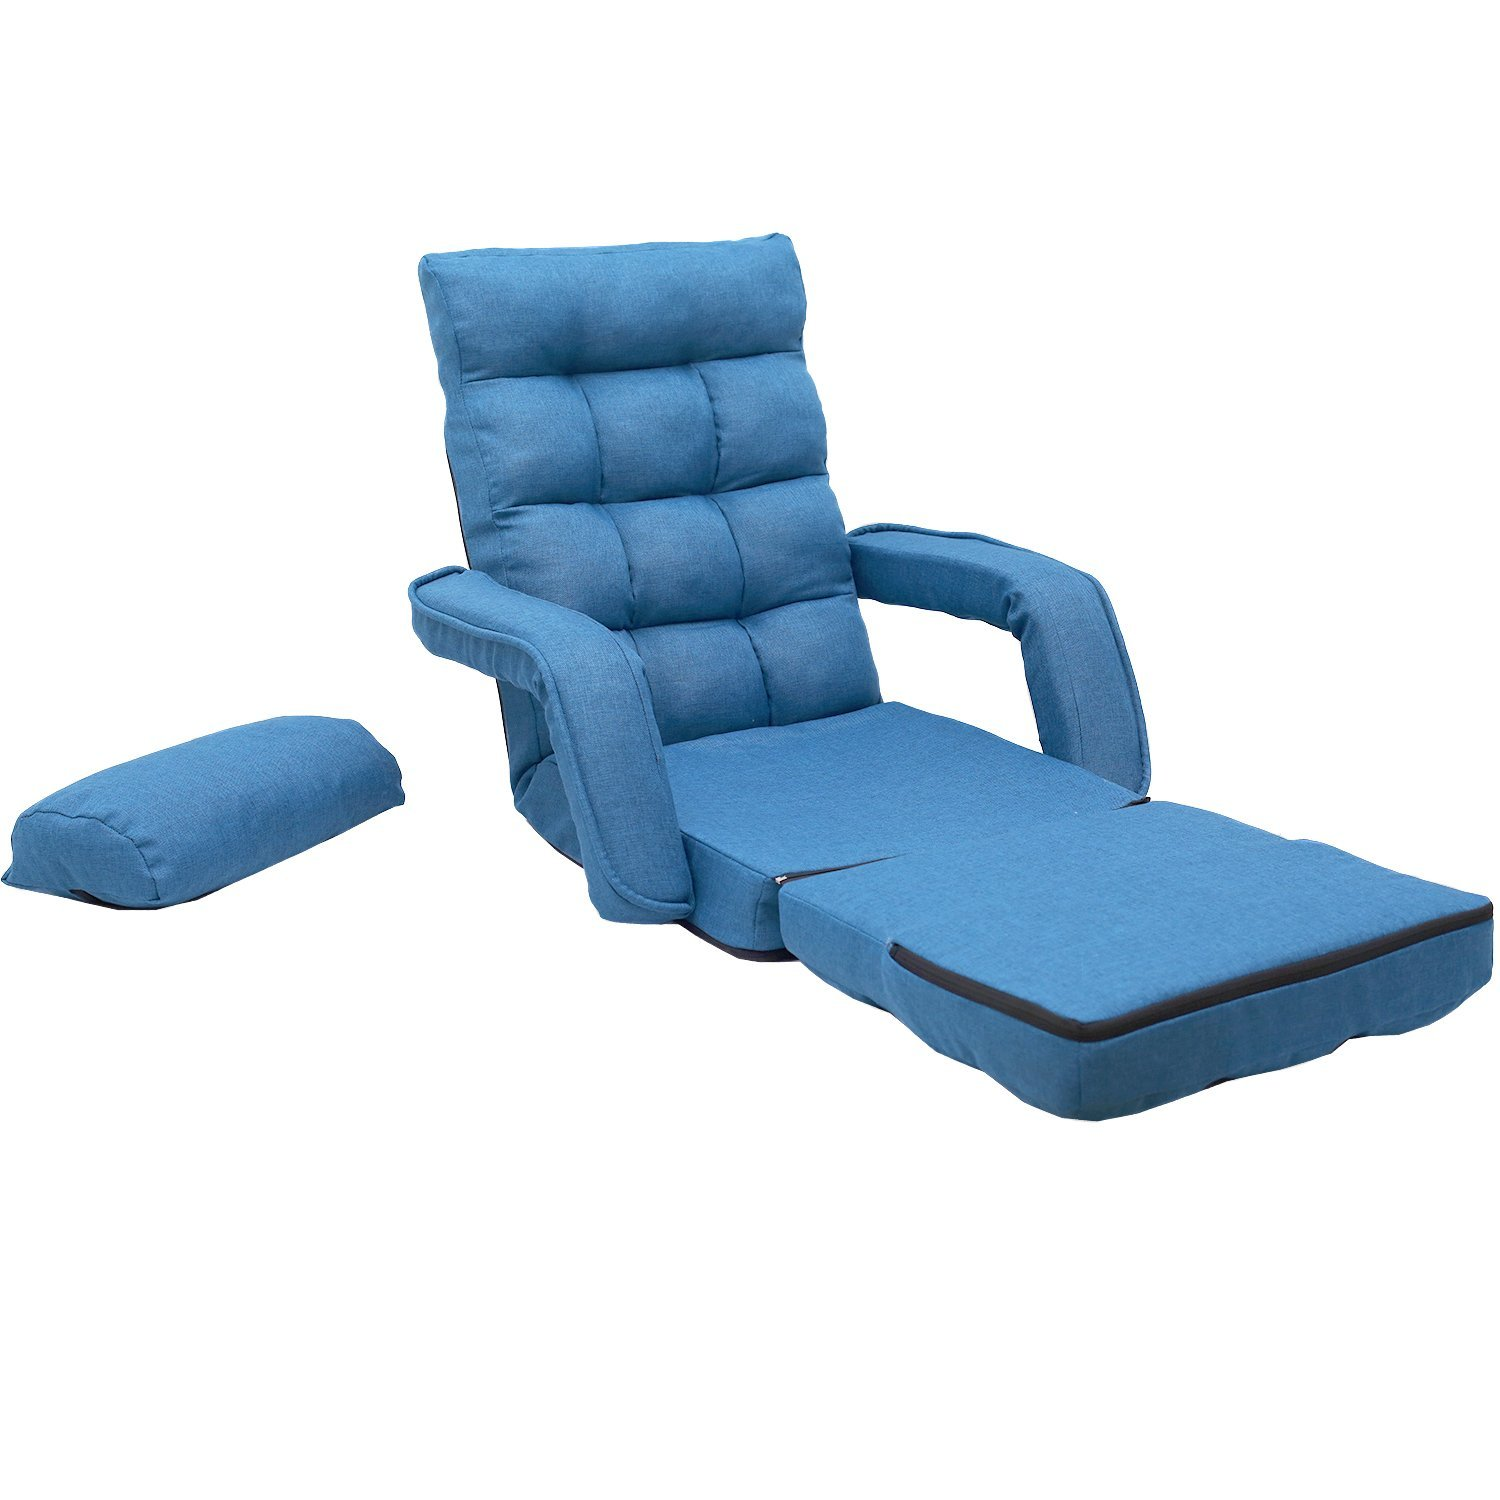 Admirable Merax Folding Lazy Sofa Floor Chair Sofa Lounger Bed With Armrests And A Pillow Blue Andrewgaddart Wooden Chair Designs For Living Room Andrewgaddartcom